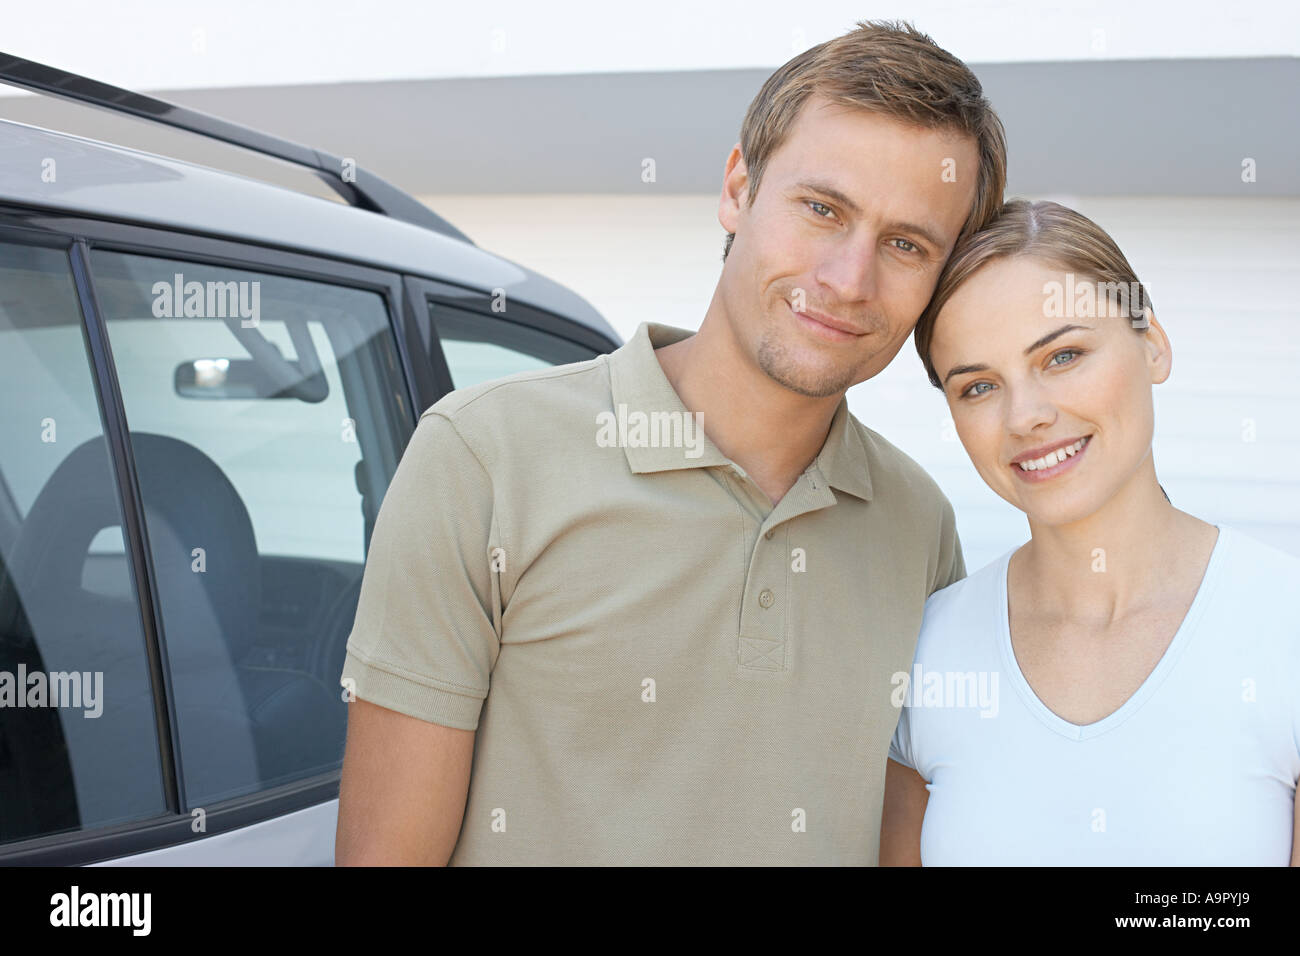 Mid adult couple stood outside with car - Stock Image